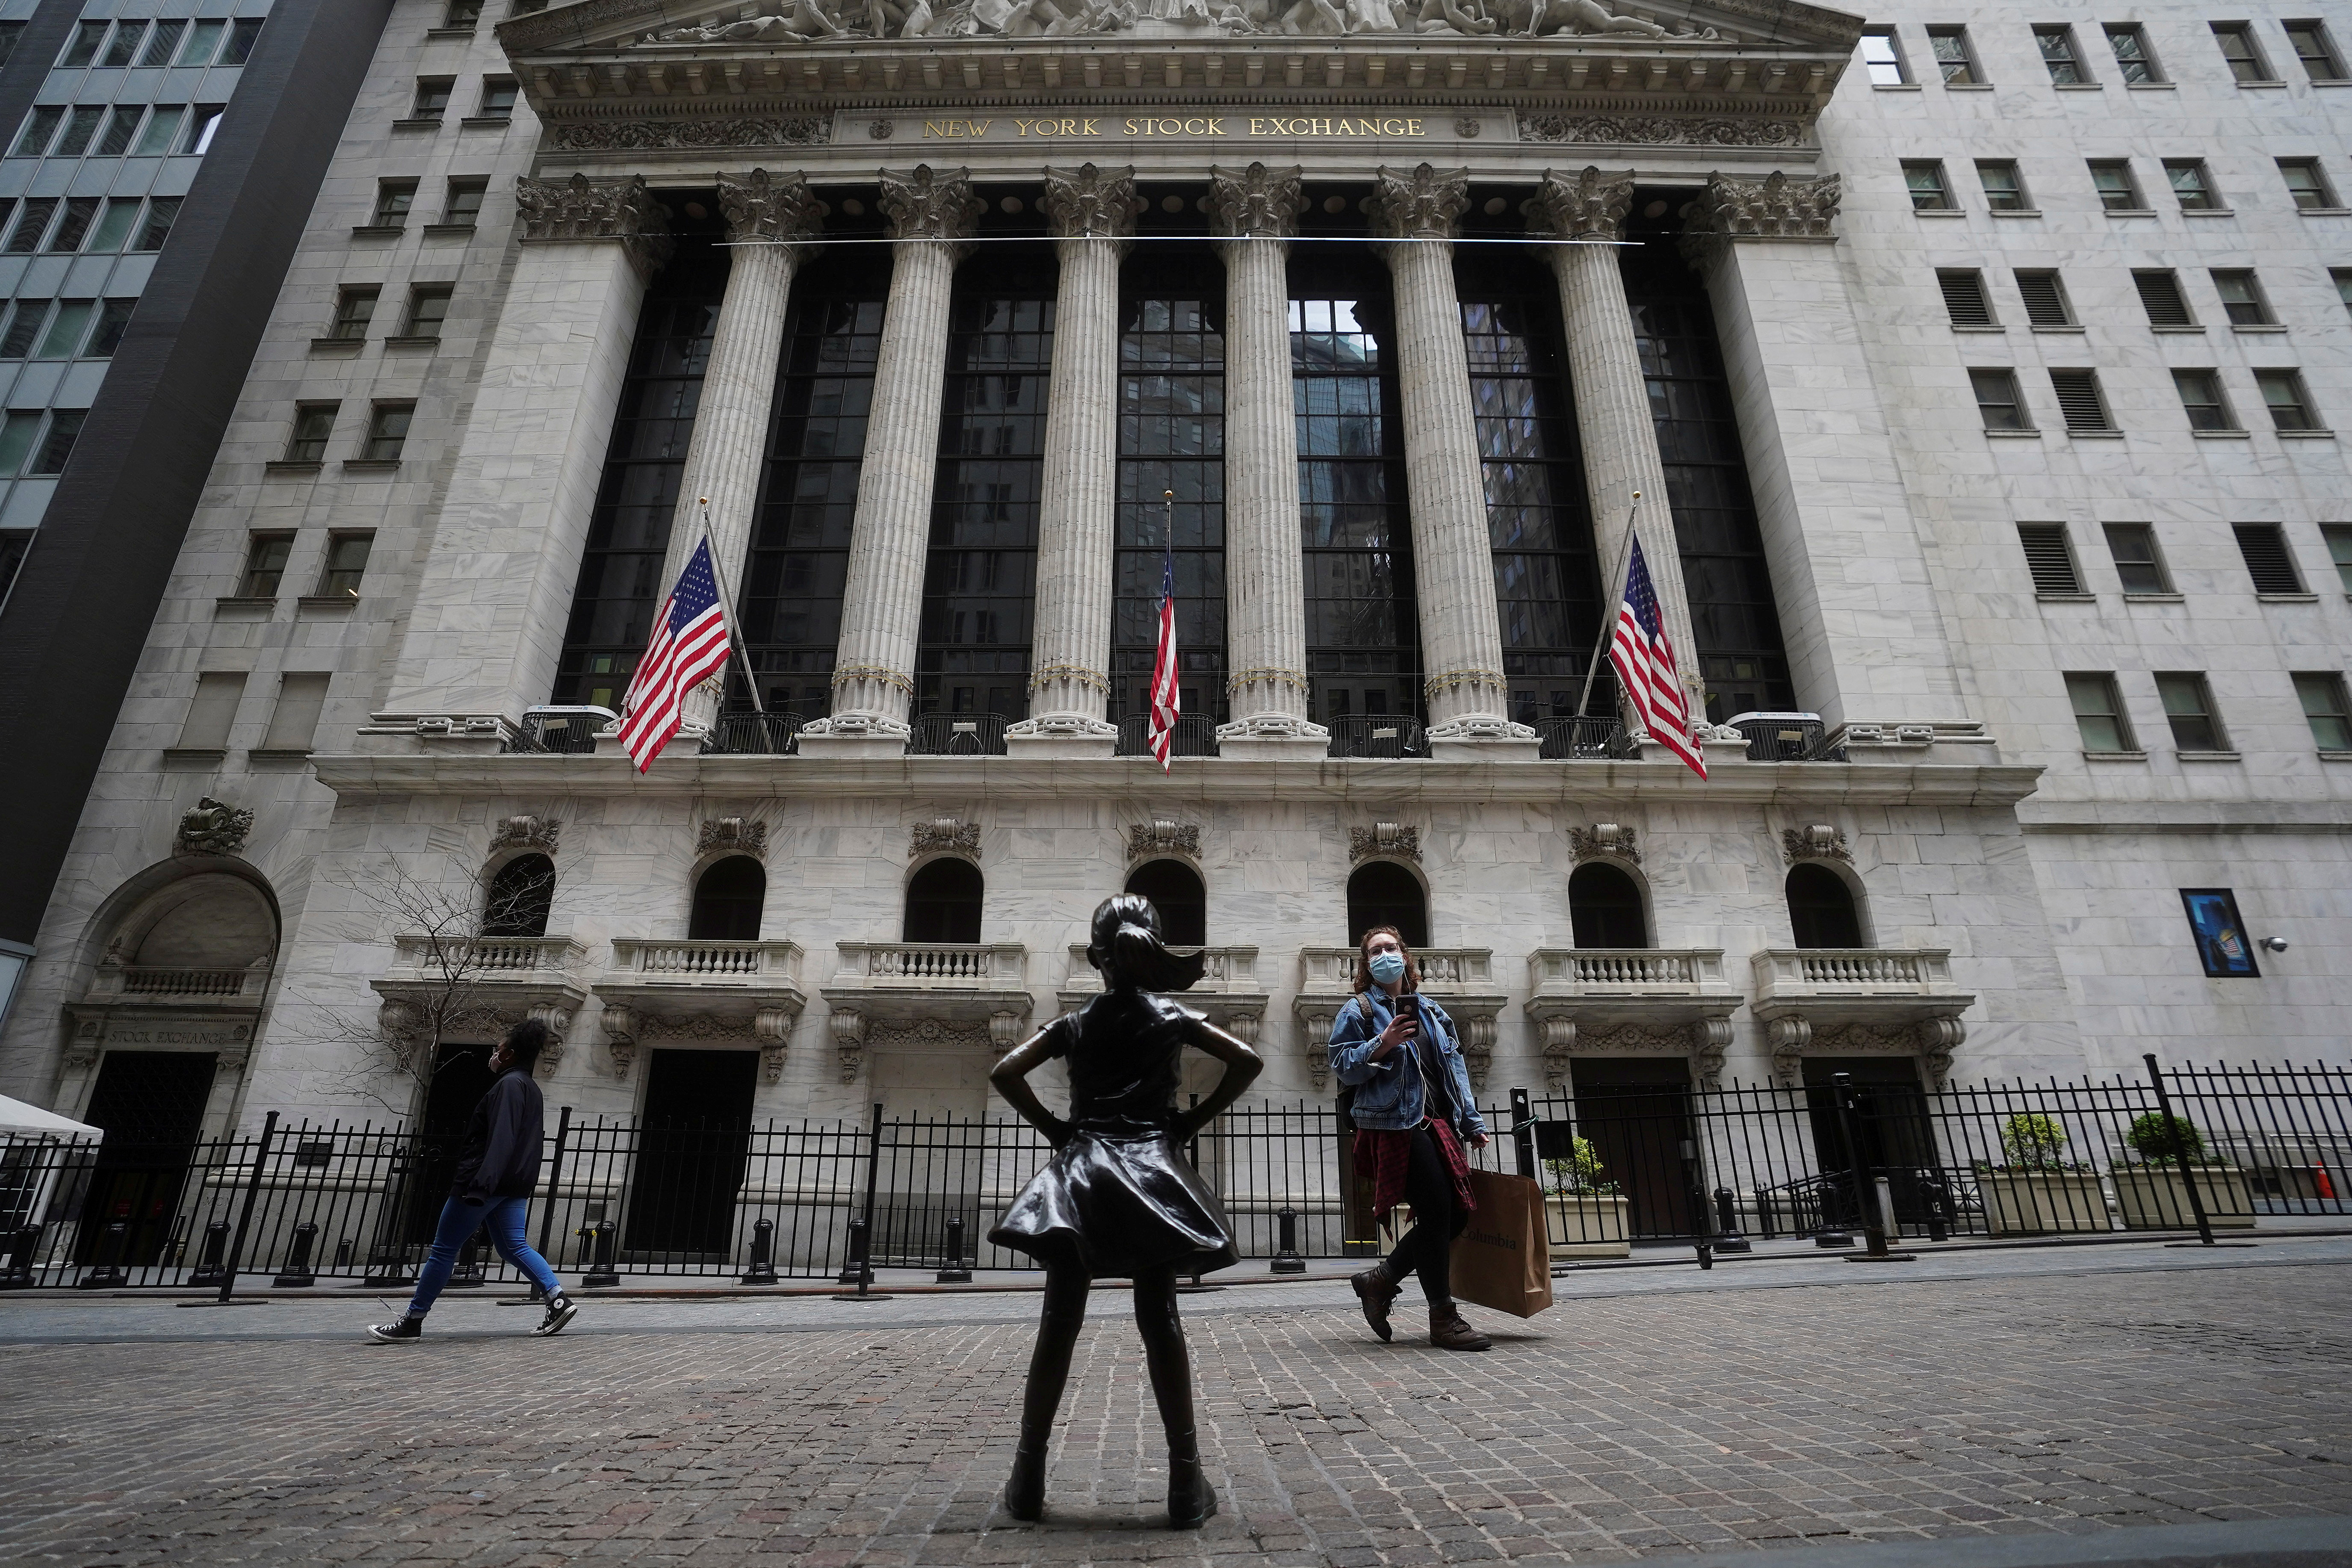 The New York Stock Exchange is pictured in the Manhattan borough of New York City, New York, U.S., April 16, 2021. REUTERS/Carlo Allegri